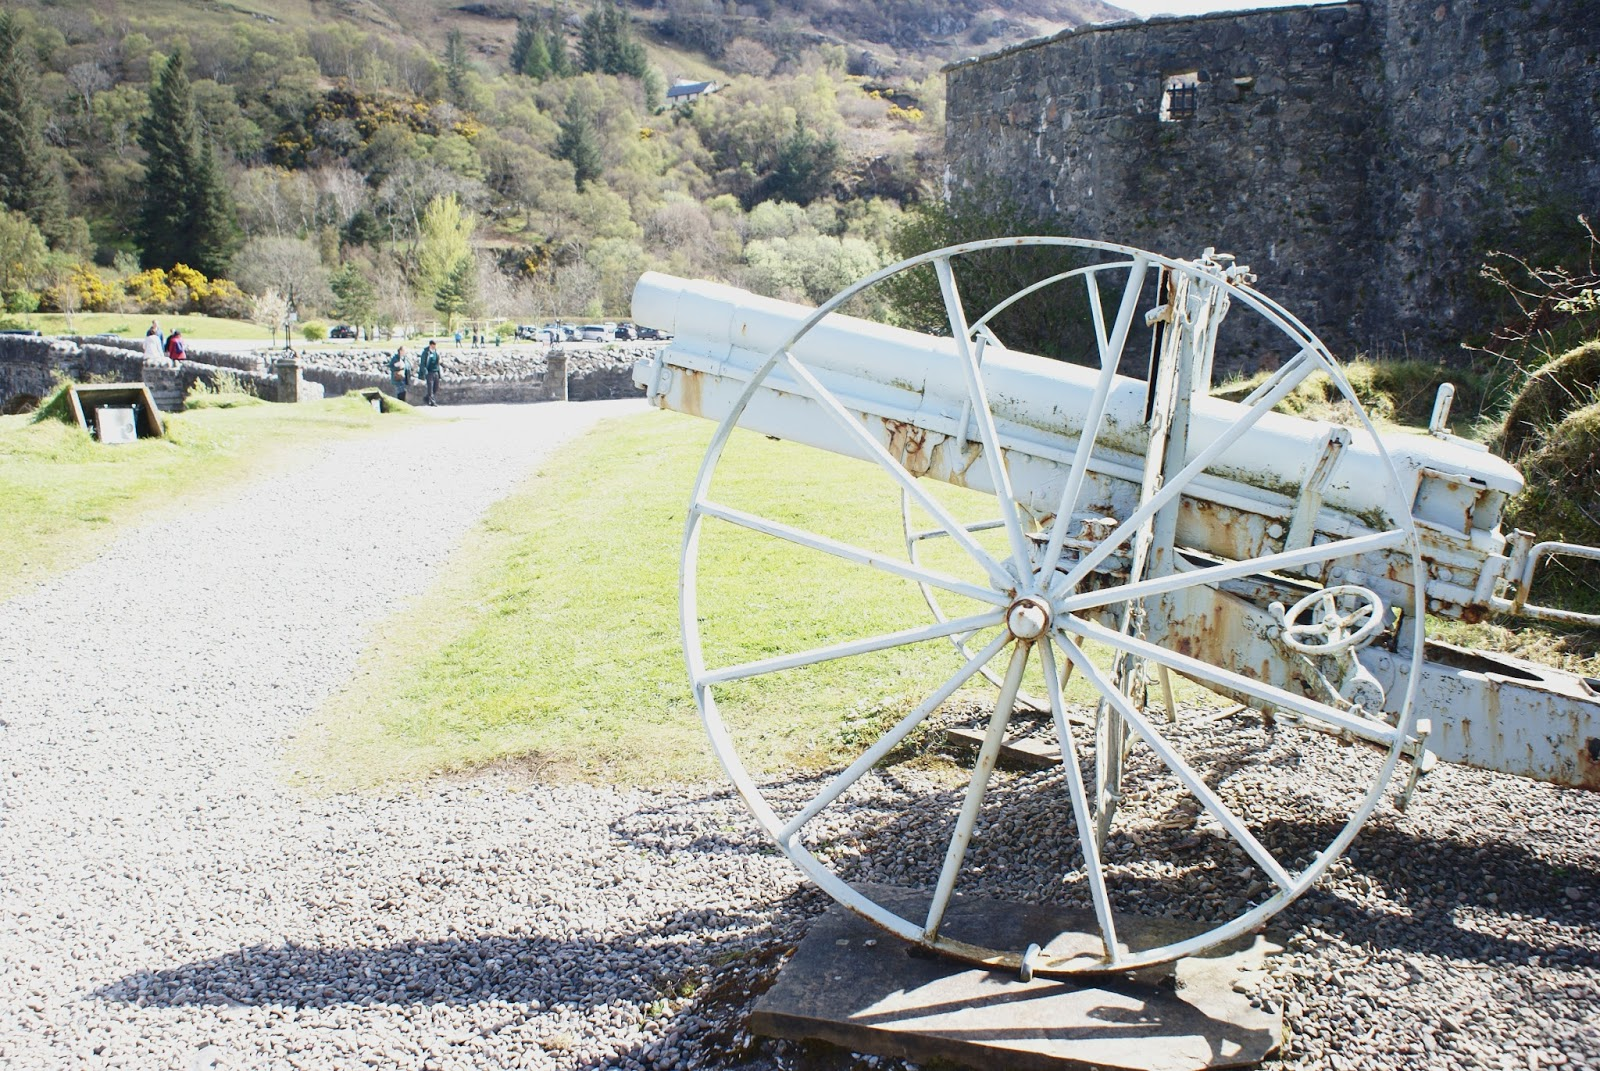 cannon eilean donan castle dornie scotland uk road trip travel united kingdom